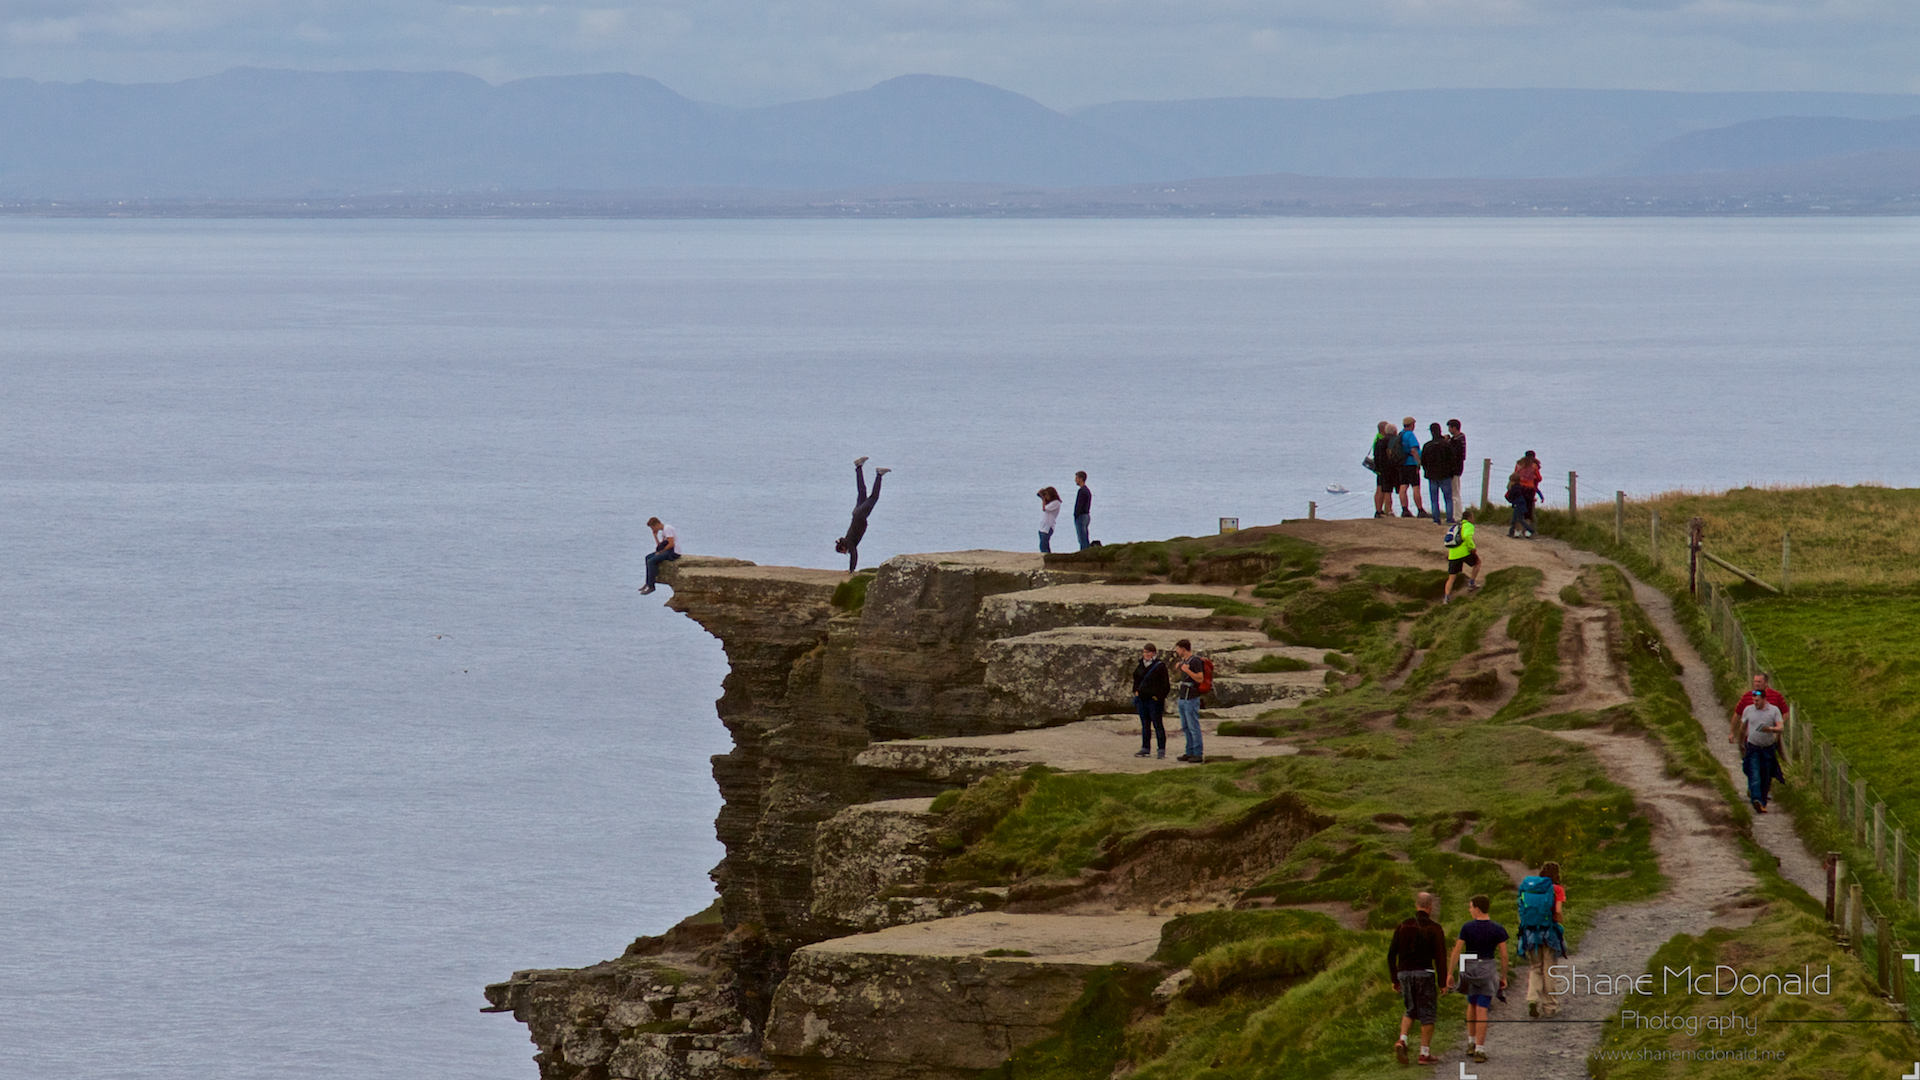 Cliffs of Moher, stupidity on the cliffs photographed by Shane McDonald Photography